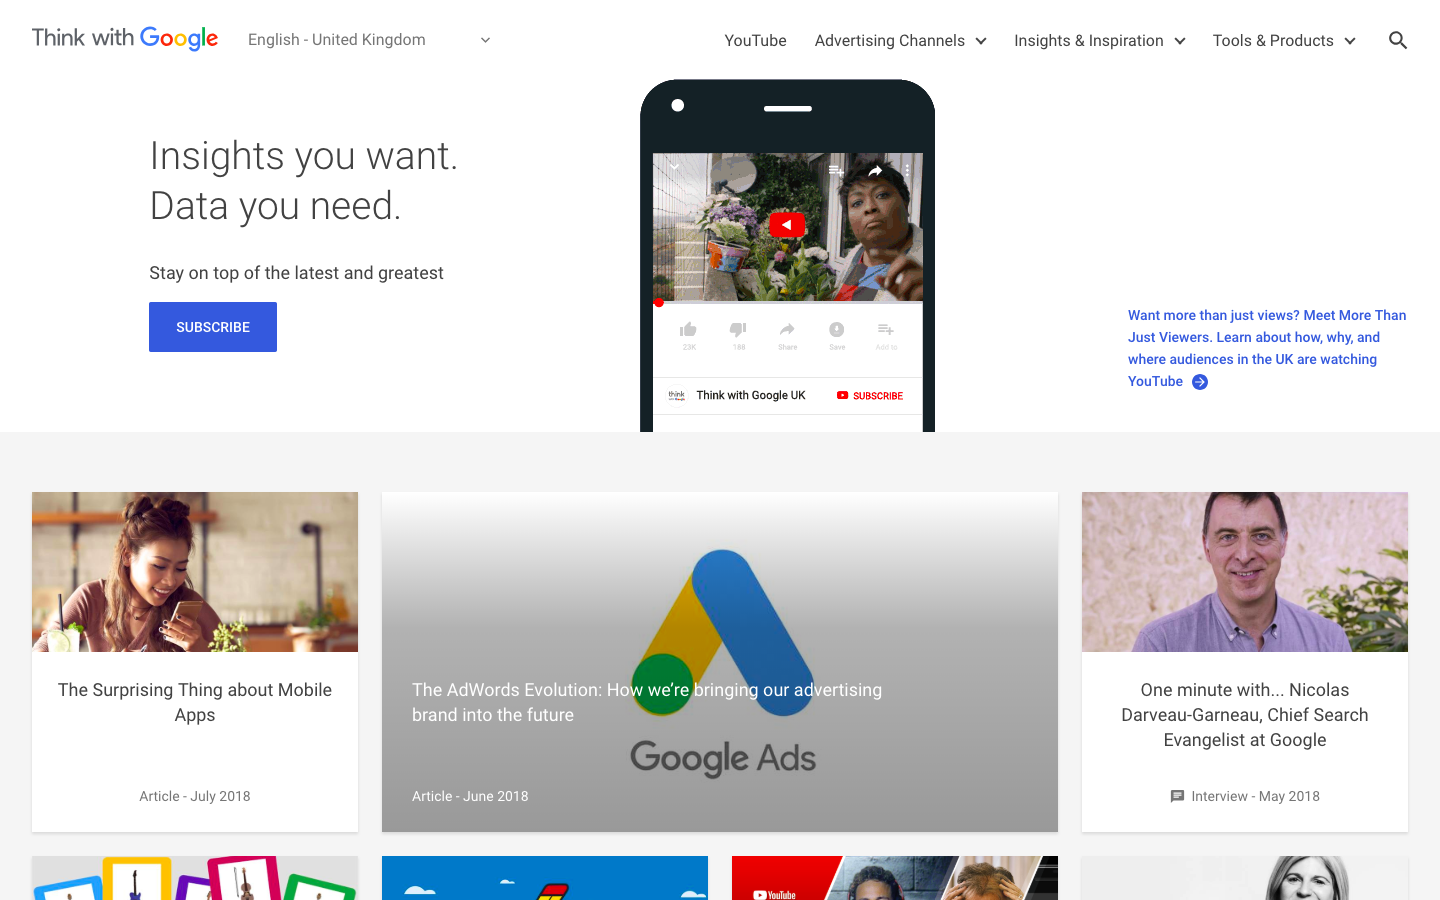 Think with Google uses a card-based layout